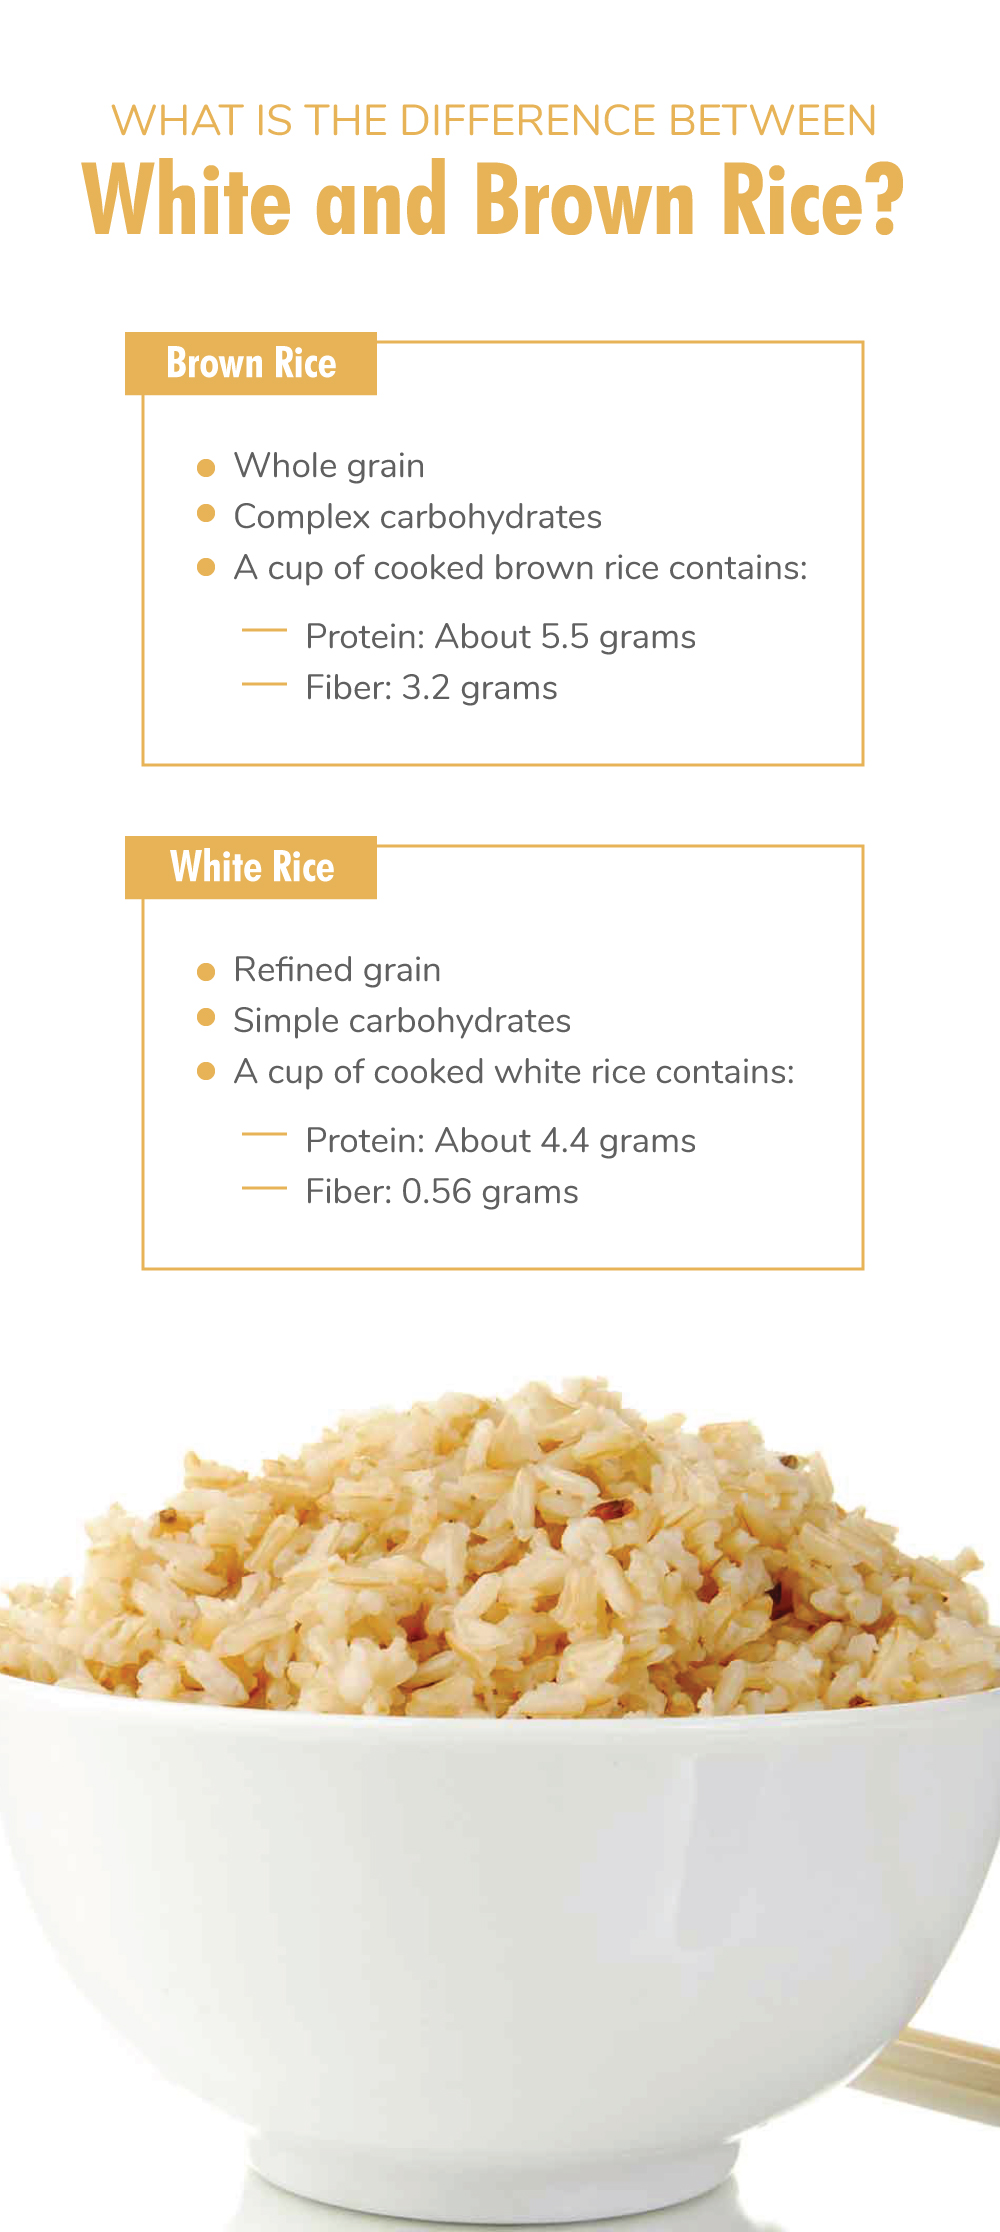 What Is the Difference Between White and Brown Rice?